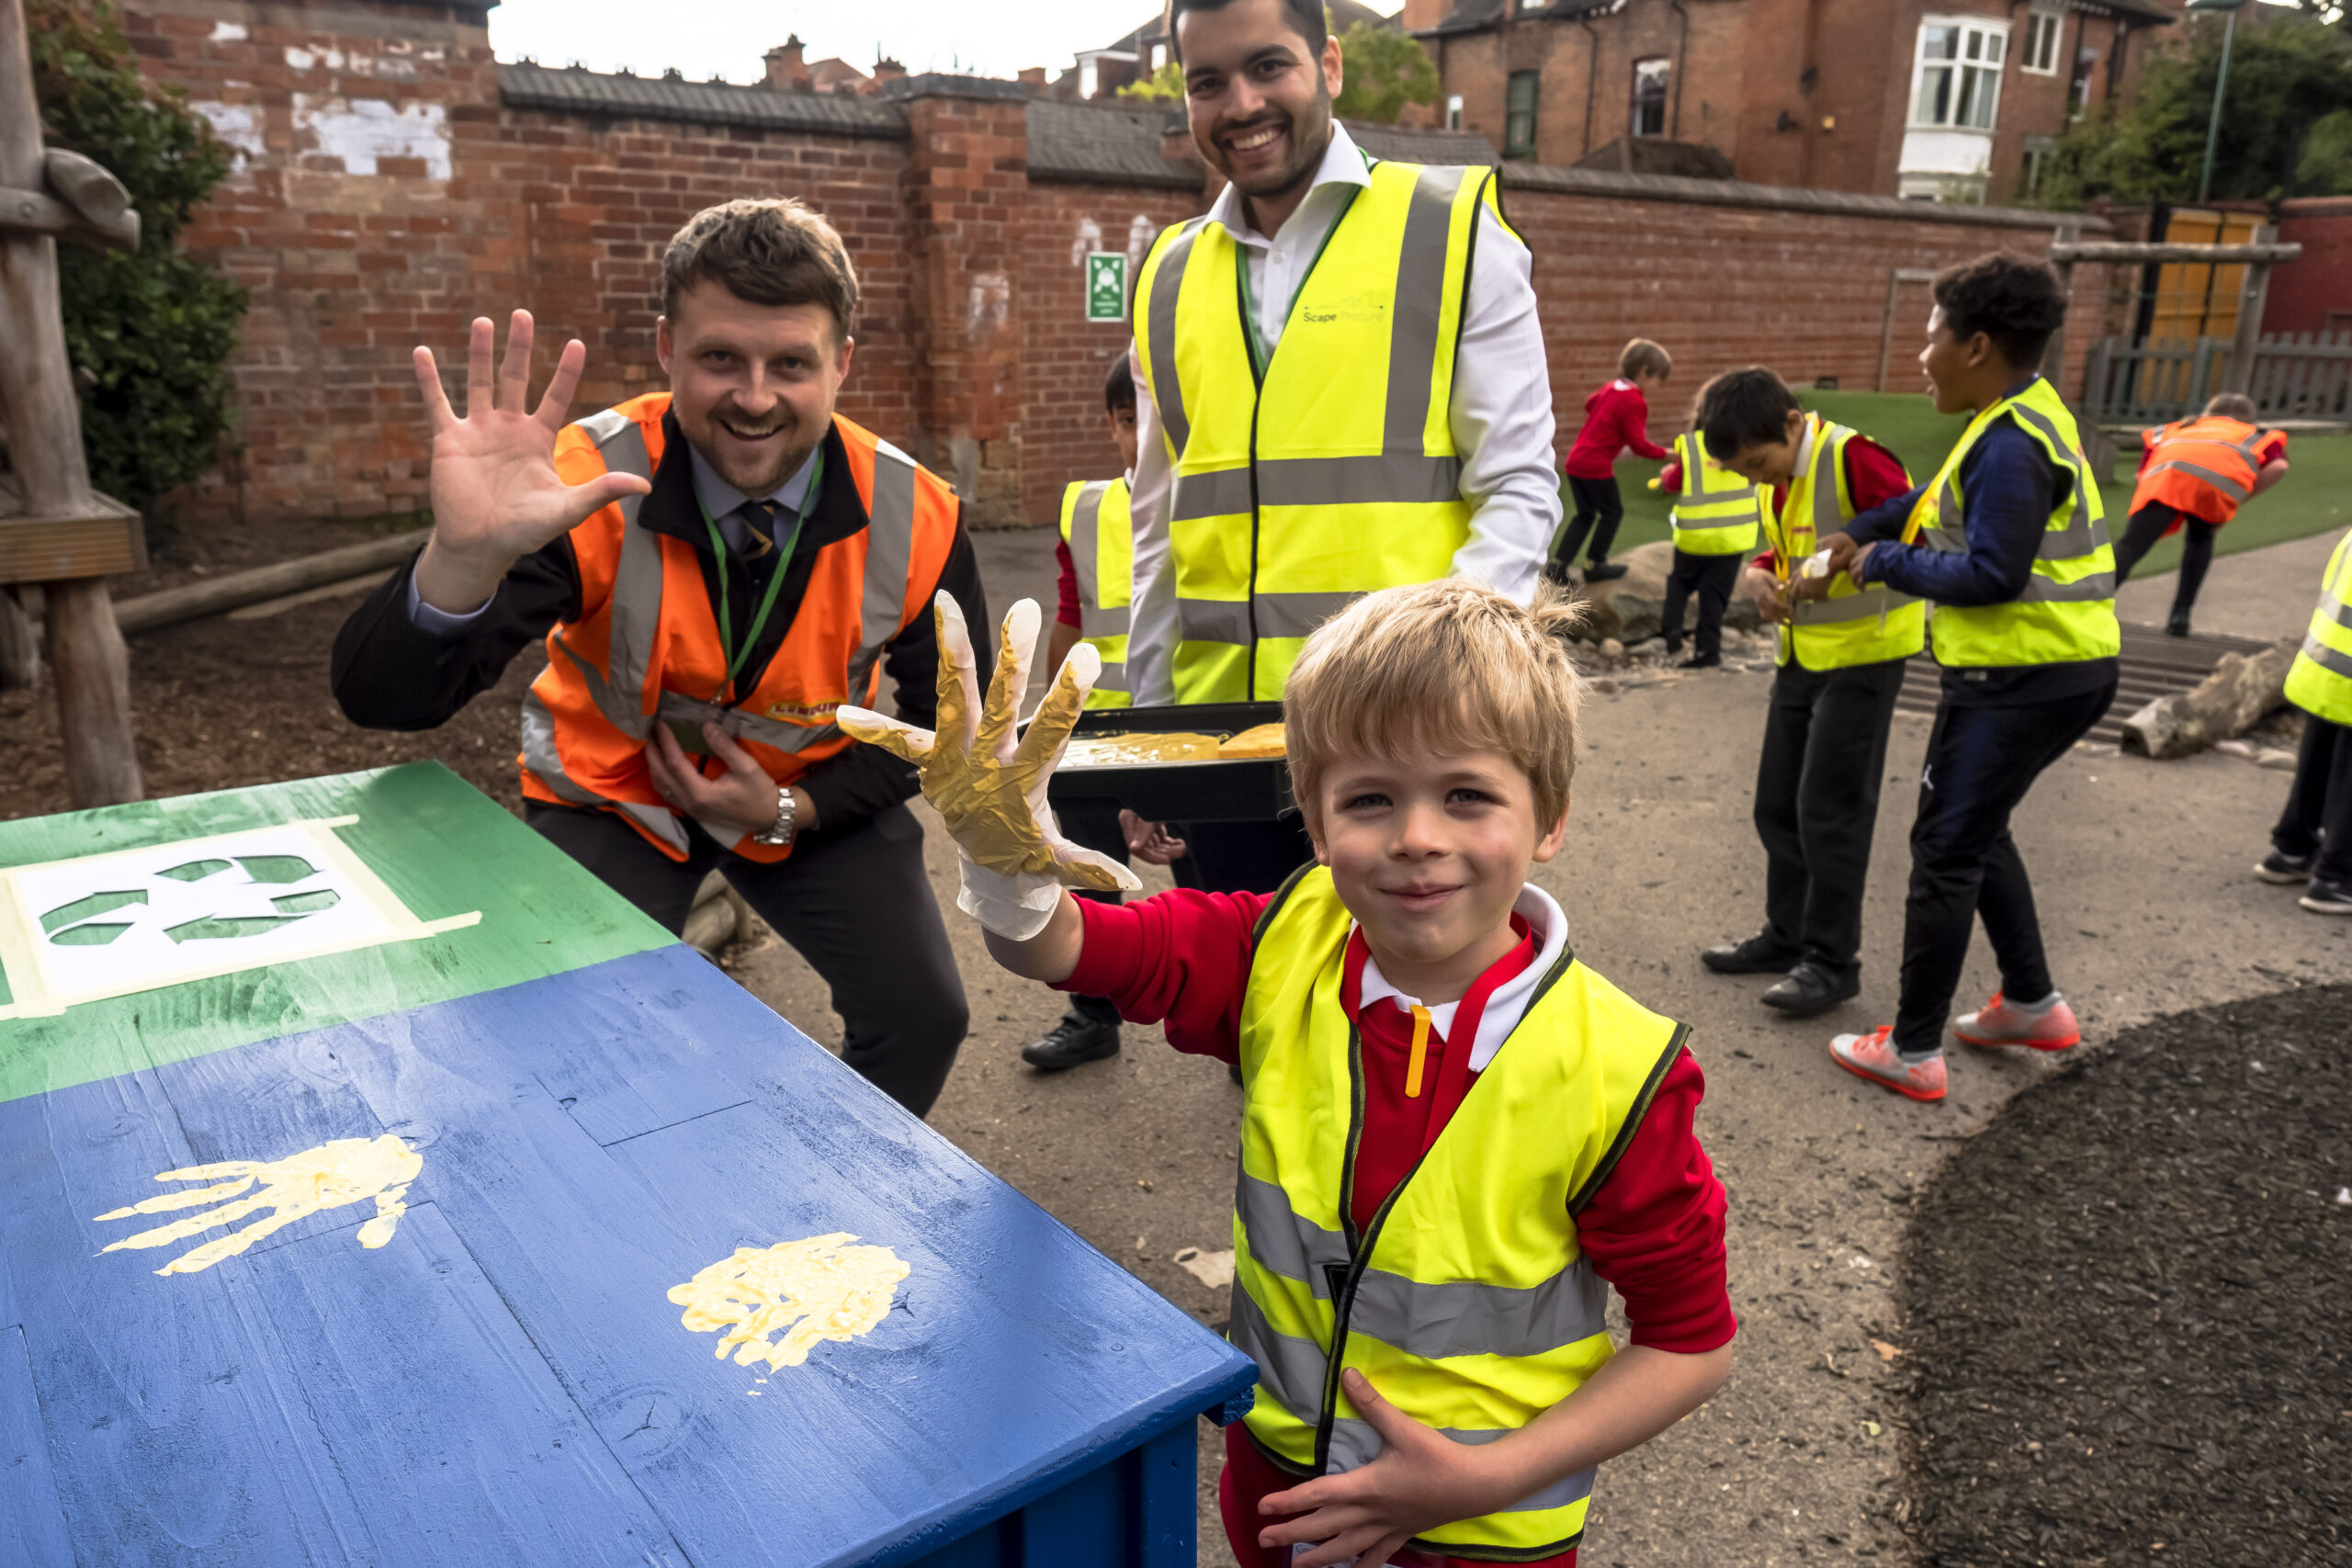 Lindum leads lessons in litter recycling